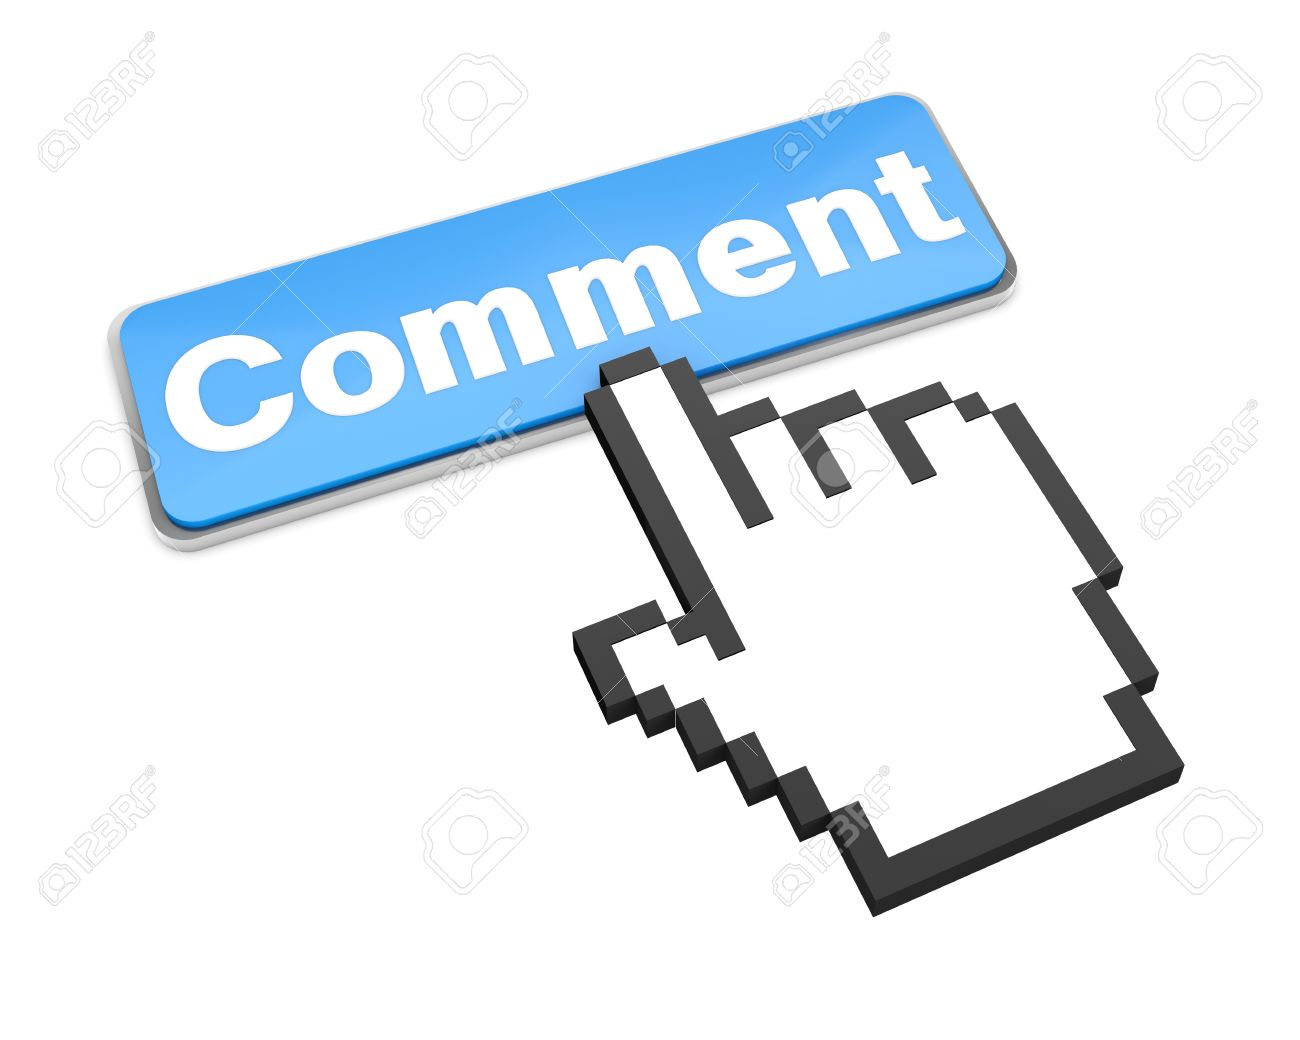 comment symbol icon stock photo picture and royalty free image image 22535940 comment symbol icon